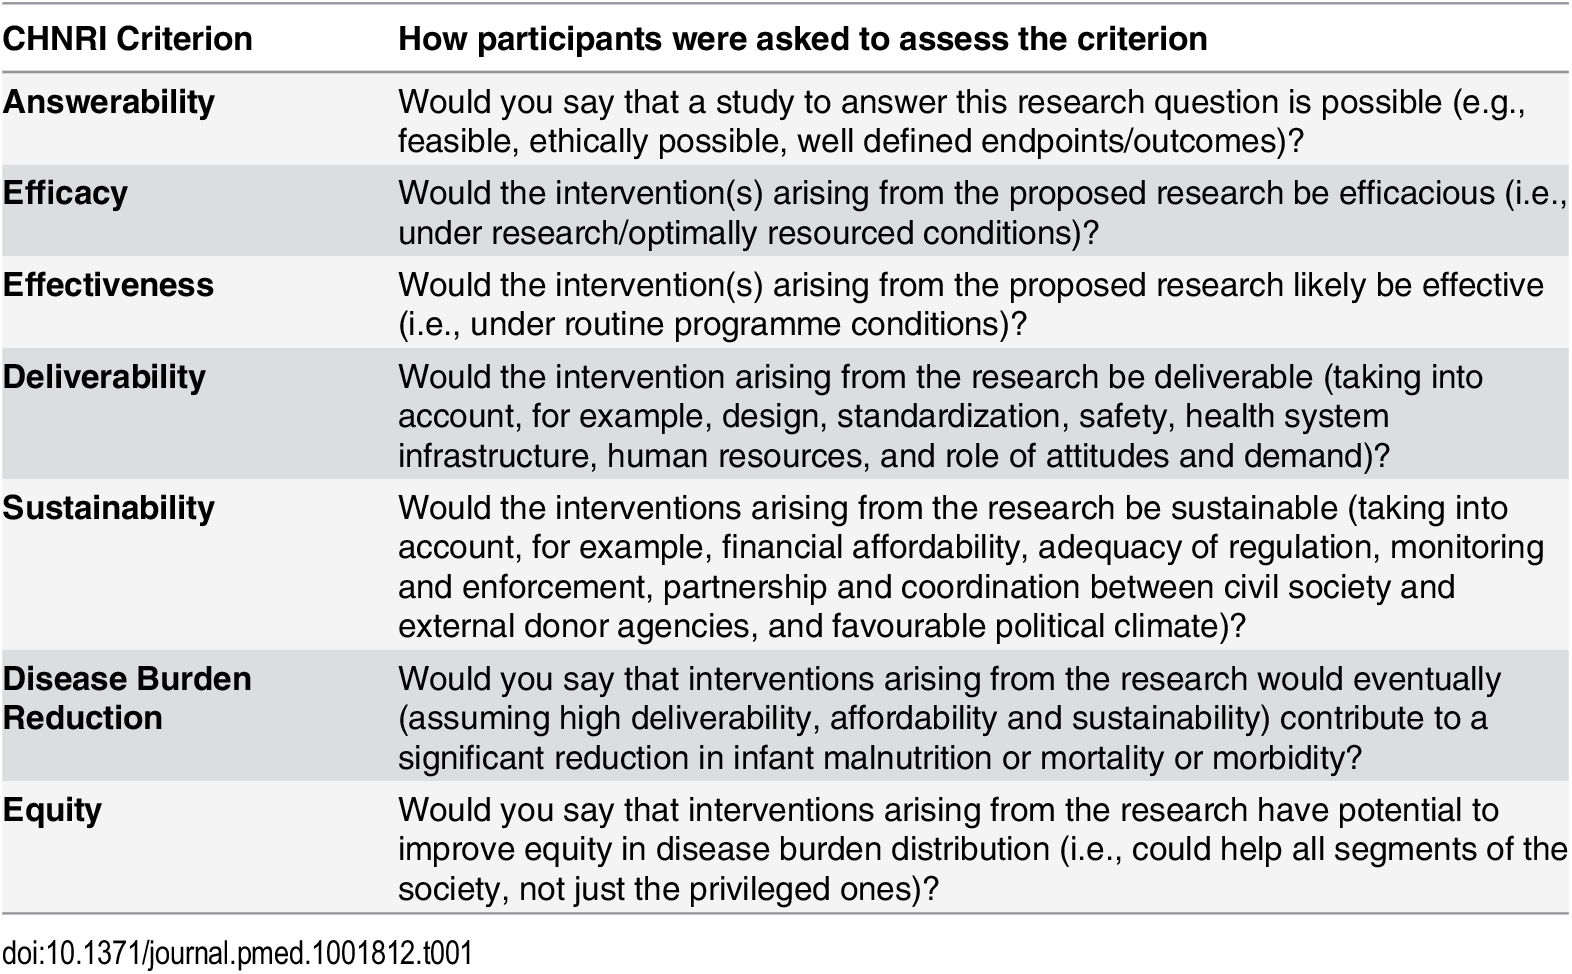 CHNRI judging criteria for each research question (option).